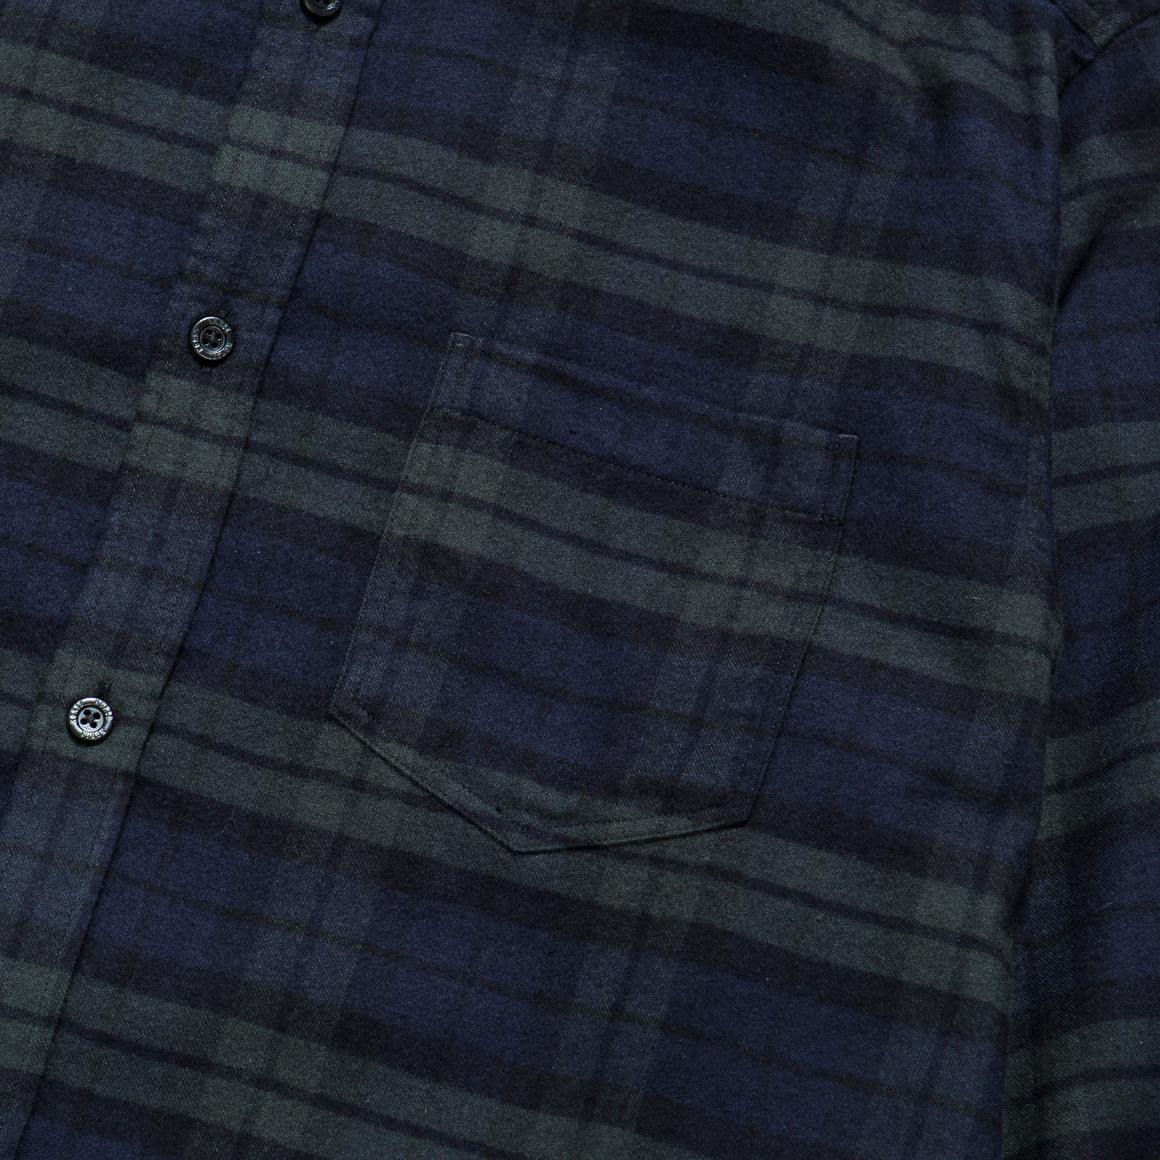 Norse Projects - Anton Brushed Flannel Shirt - Black Watch Check - Up There